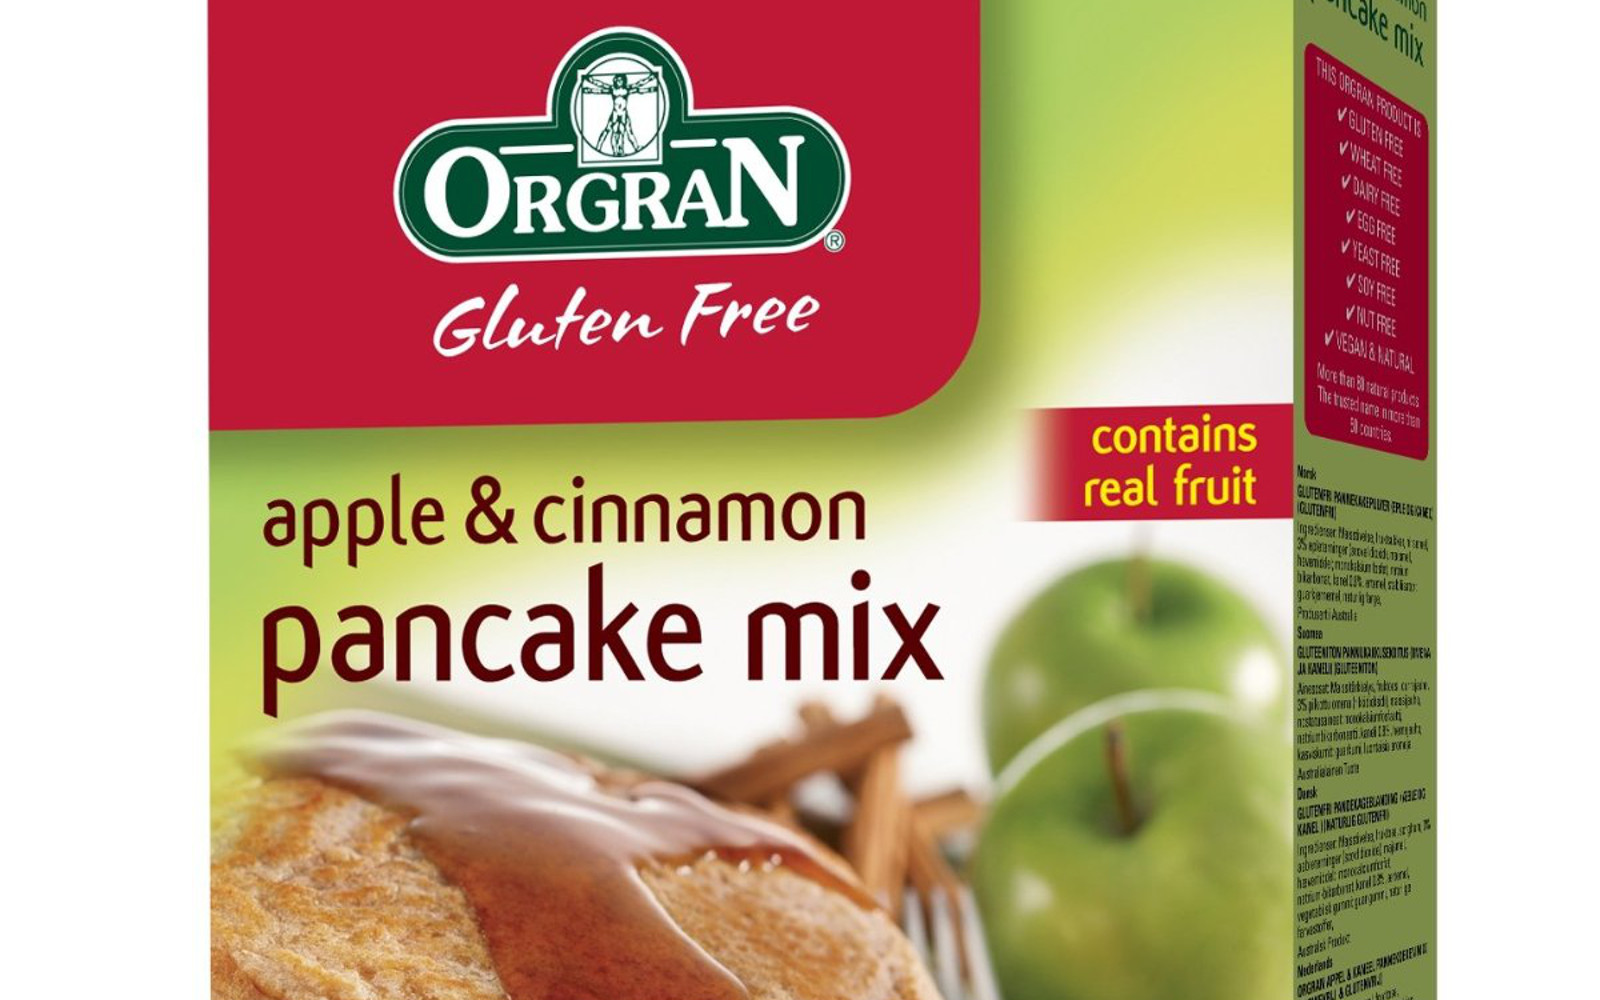 Orgran Apple Cinnamon Pancakes